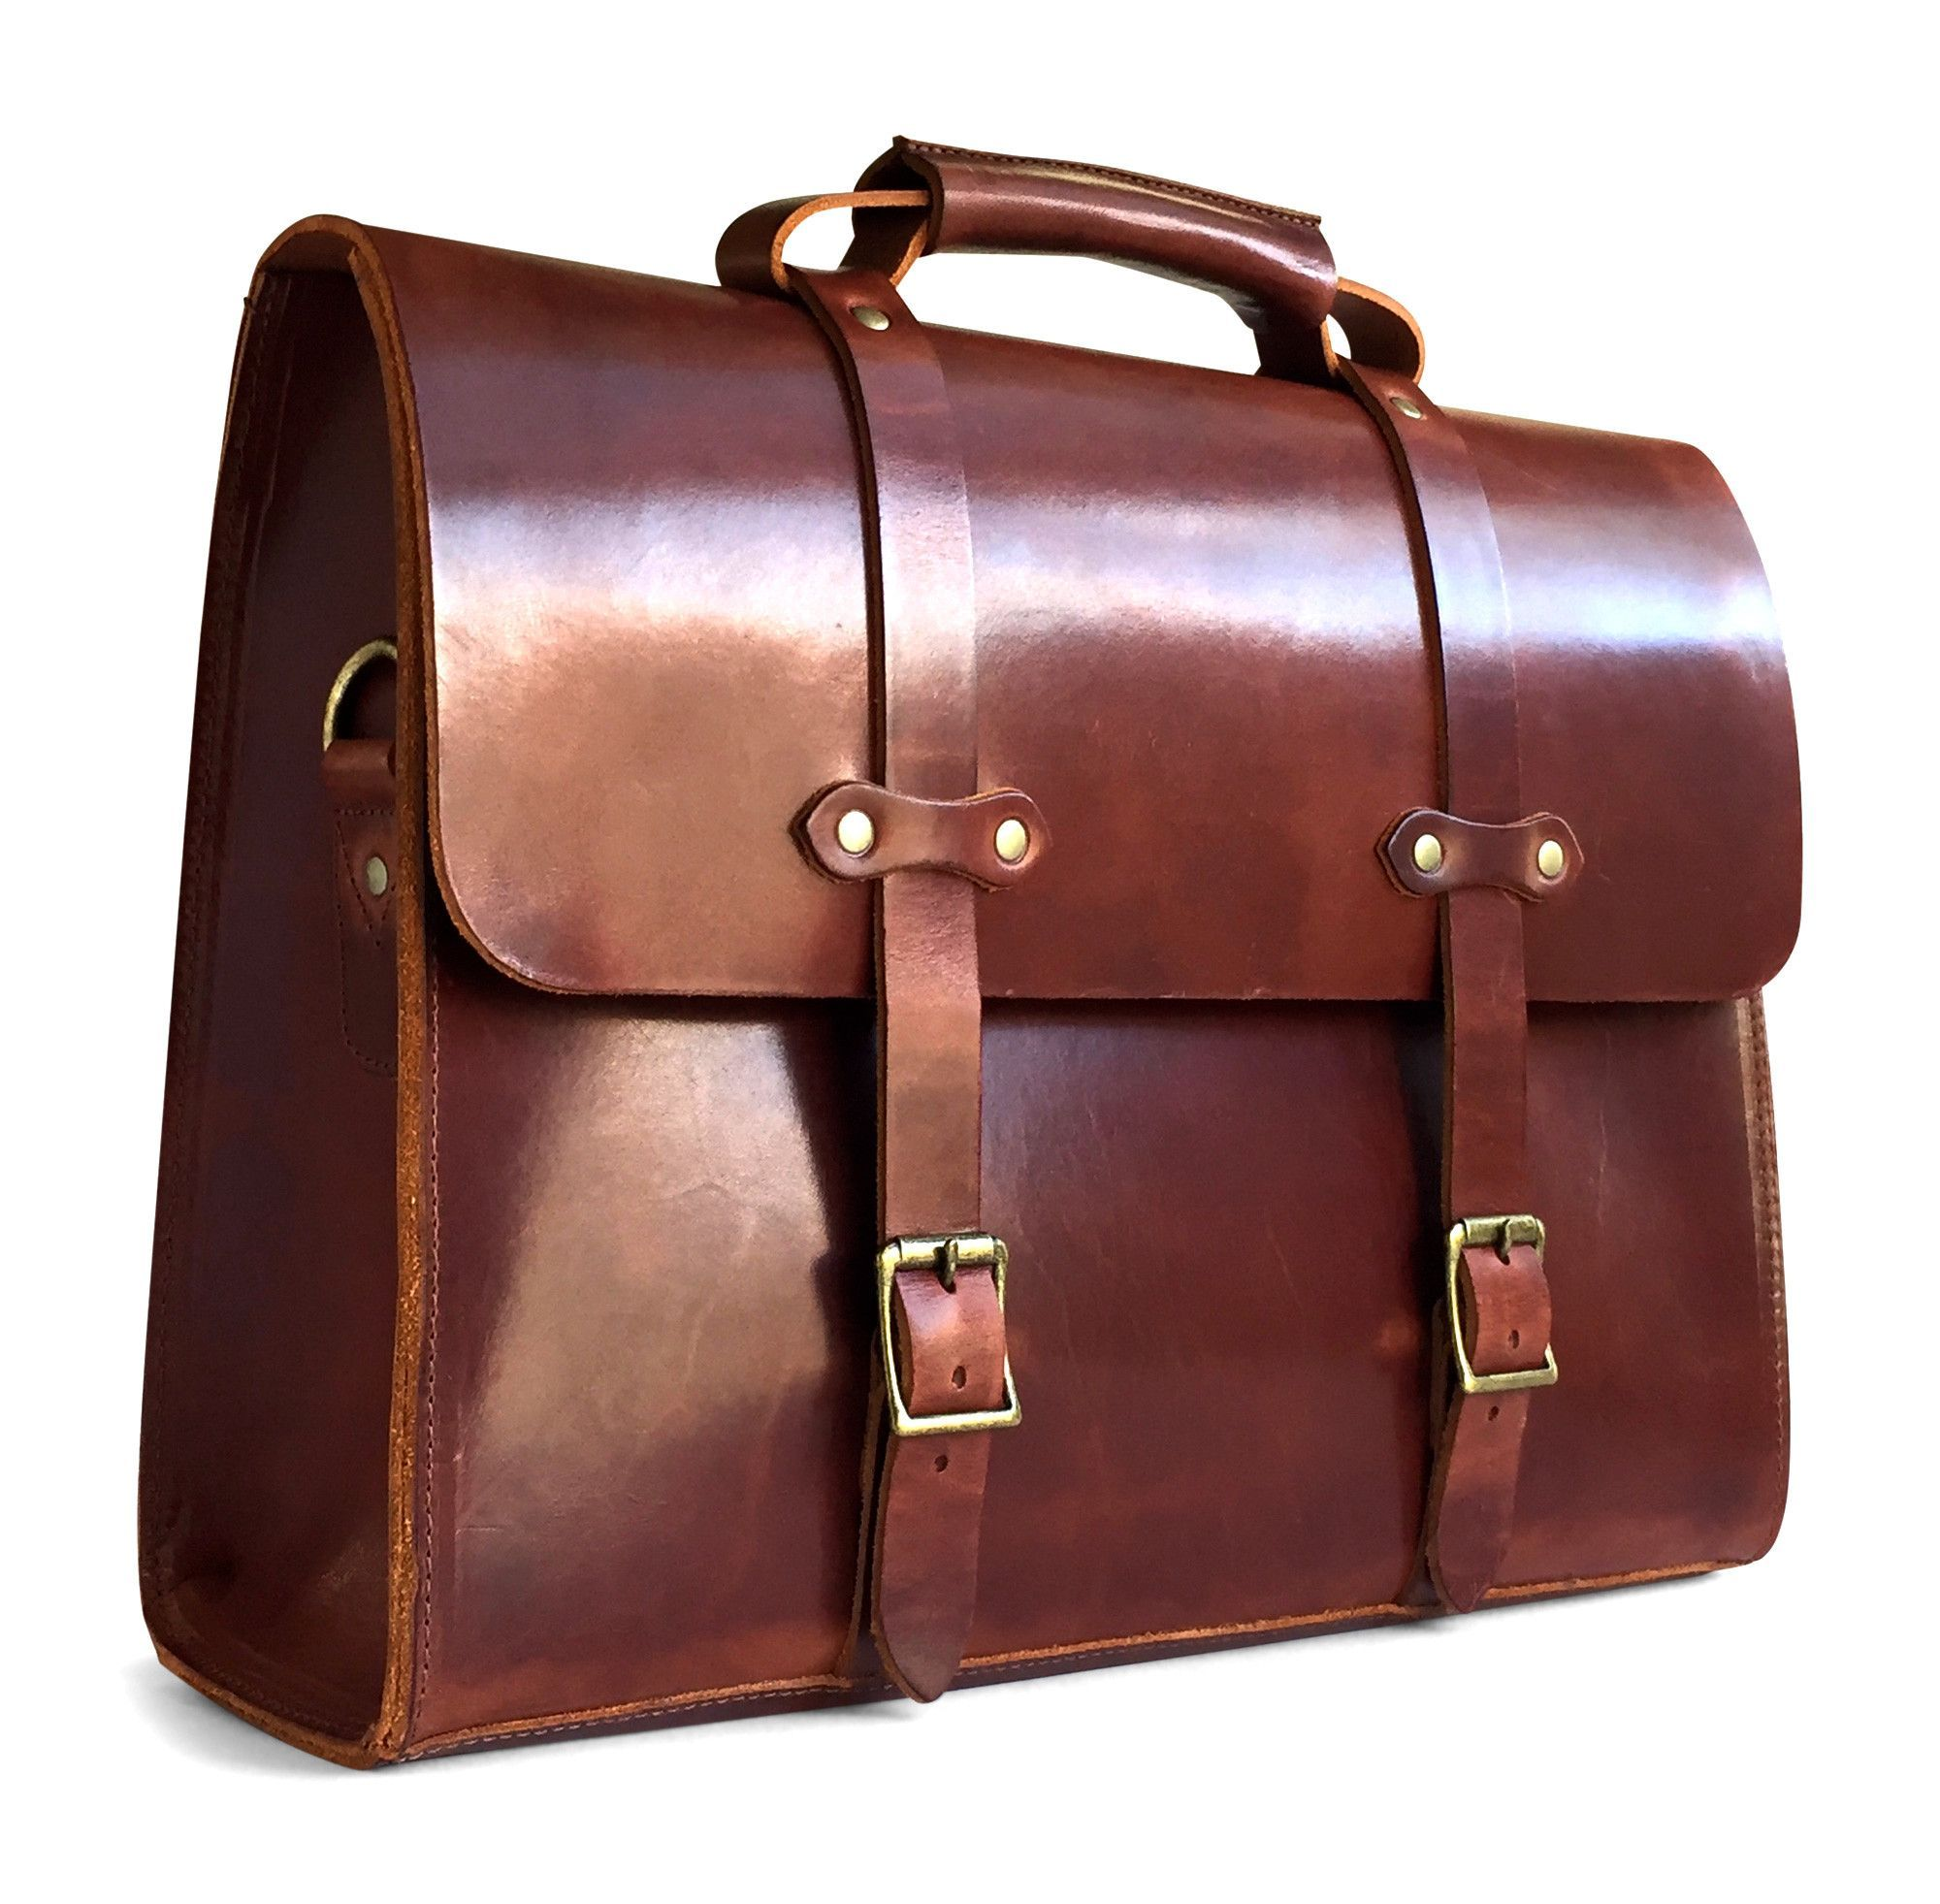 Esq Briefcase Mens Leather Bag Leather Briefcase Leather Wallet Mens